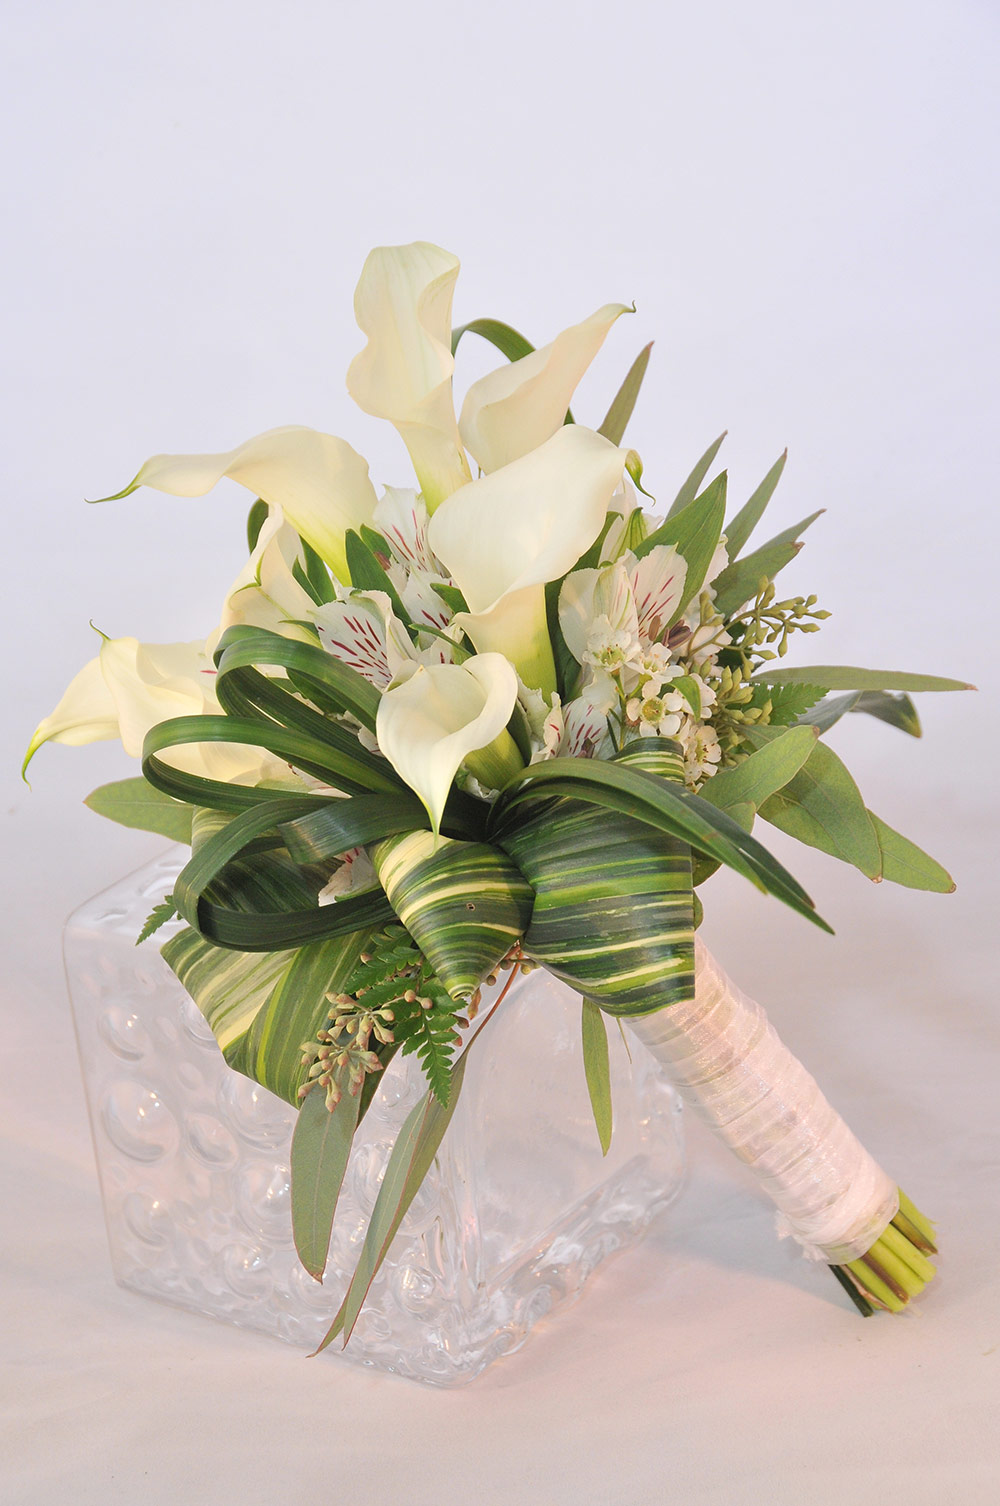 The White Mini Calla Lilly Bouquet Matching Lilly Boutonniere Vegas Wedding Flowers